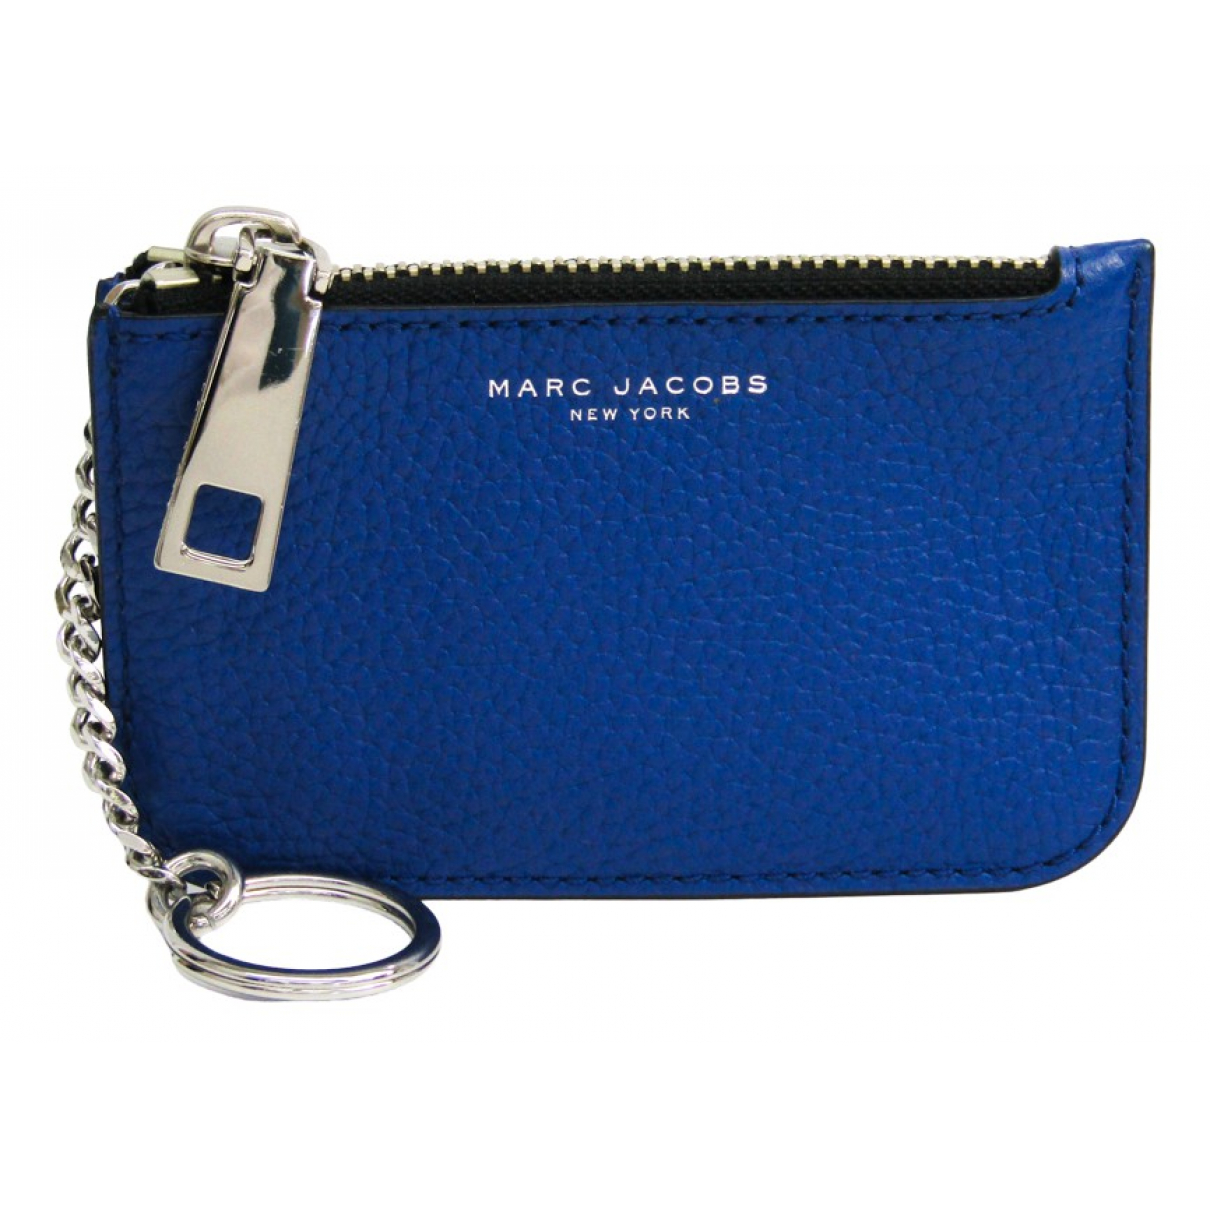 Marc Jacobs \N Kleinlederwaren in  Blau Leder